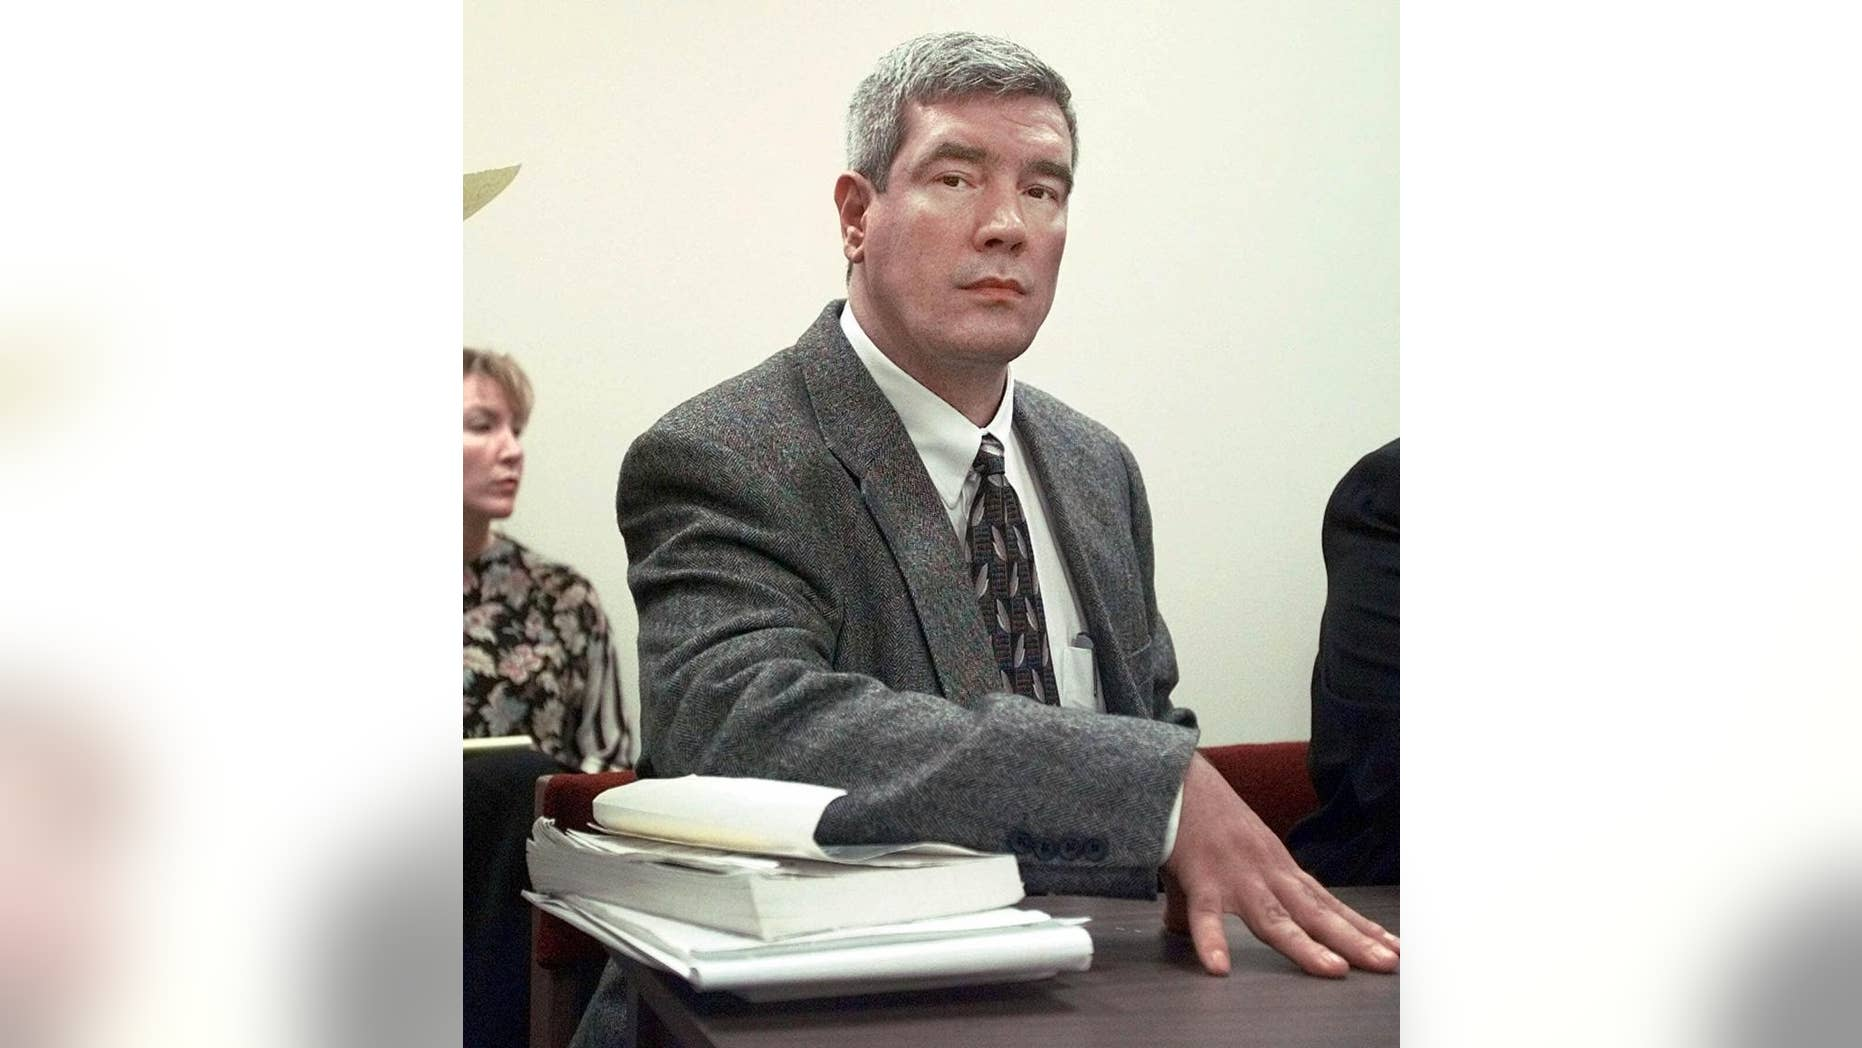 FILE - In this Feb. 8, 1999, file photo, Kerry Max Cook is seen sitting in a courtroom in Bastrop, Texas. A judge on Monday, June 6, 2016, has dismissed murder charges against Cook, who previously was convicted and almost executed in the 1977 East Texas slaying of a 21-year-old woman. The order said Cook's rights were violated, in part by false testimony during his trial. (AP Photo/LM Otero, File)